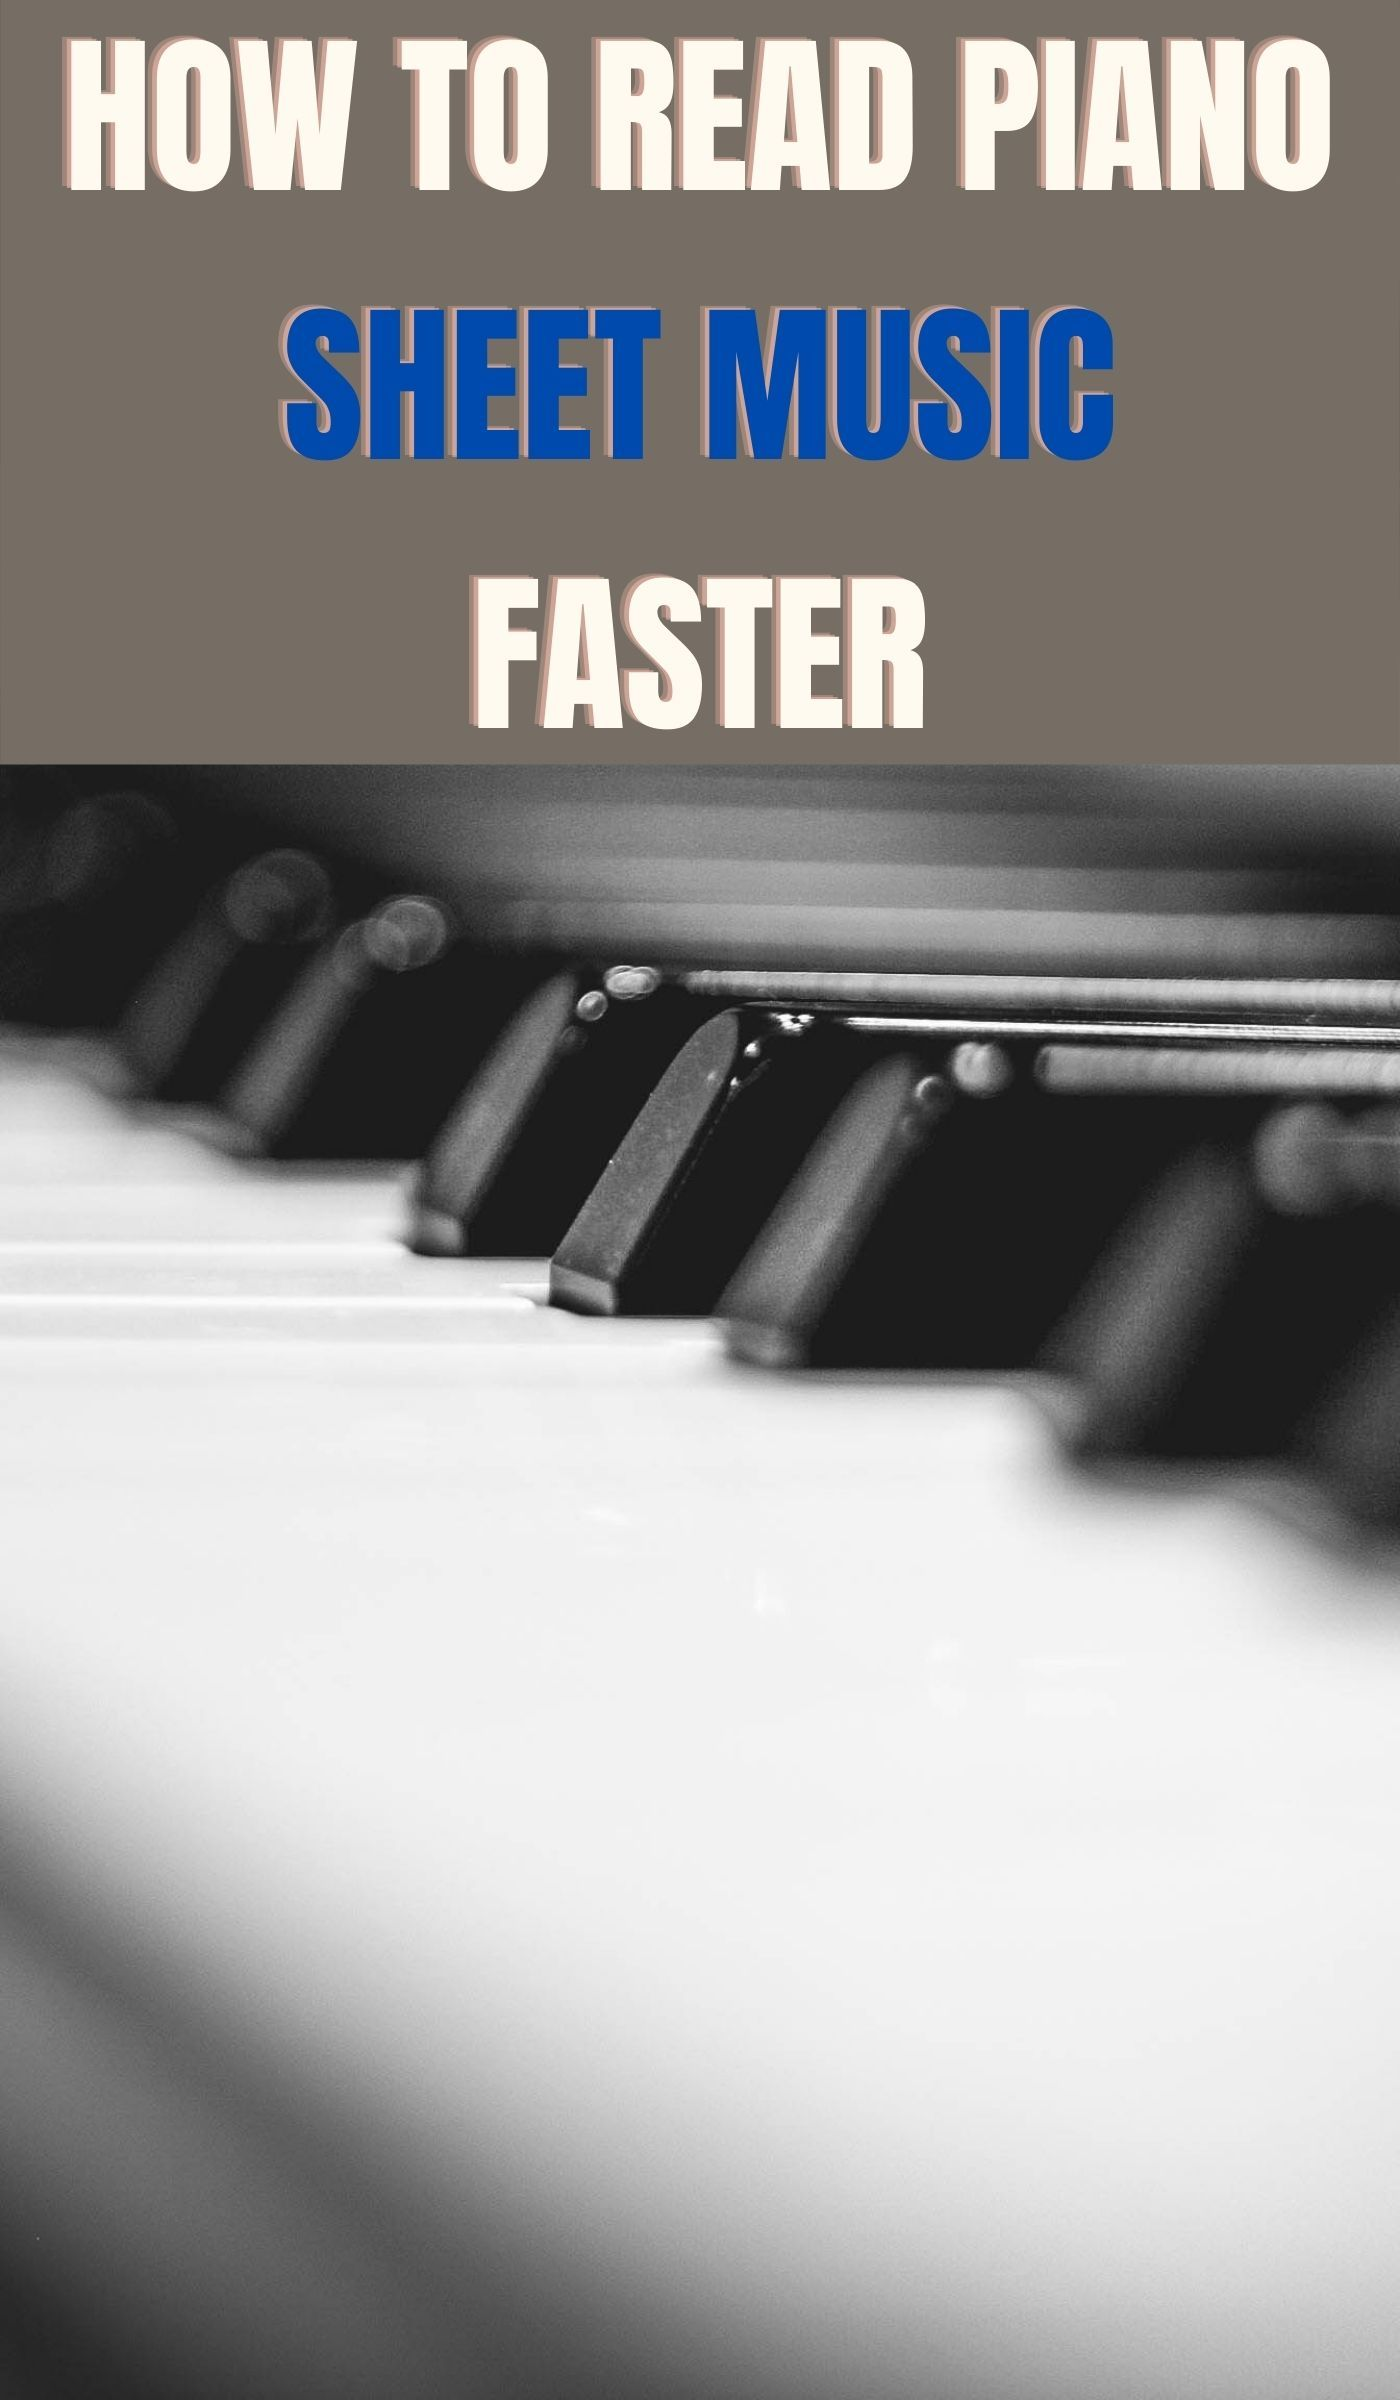 Learn The Piano Course To Follow Steps To Take And Our Advice To Progress In 2021 Piano Music Lessons Piano Sheet Music Classical Piano Lessons For Beginners How to learn to read sheet music fast